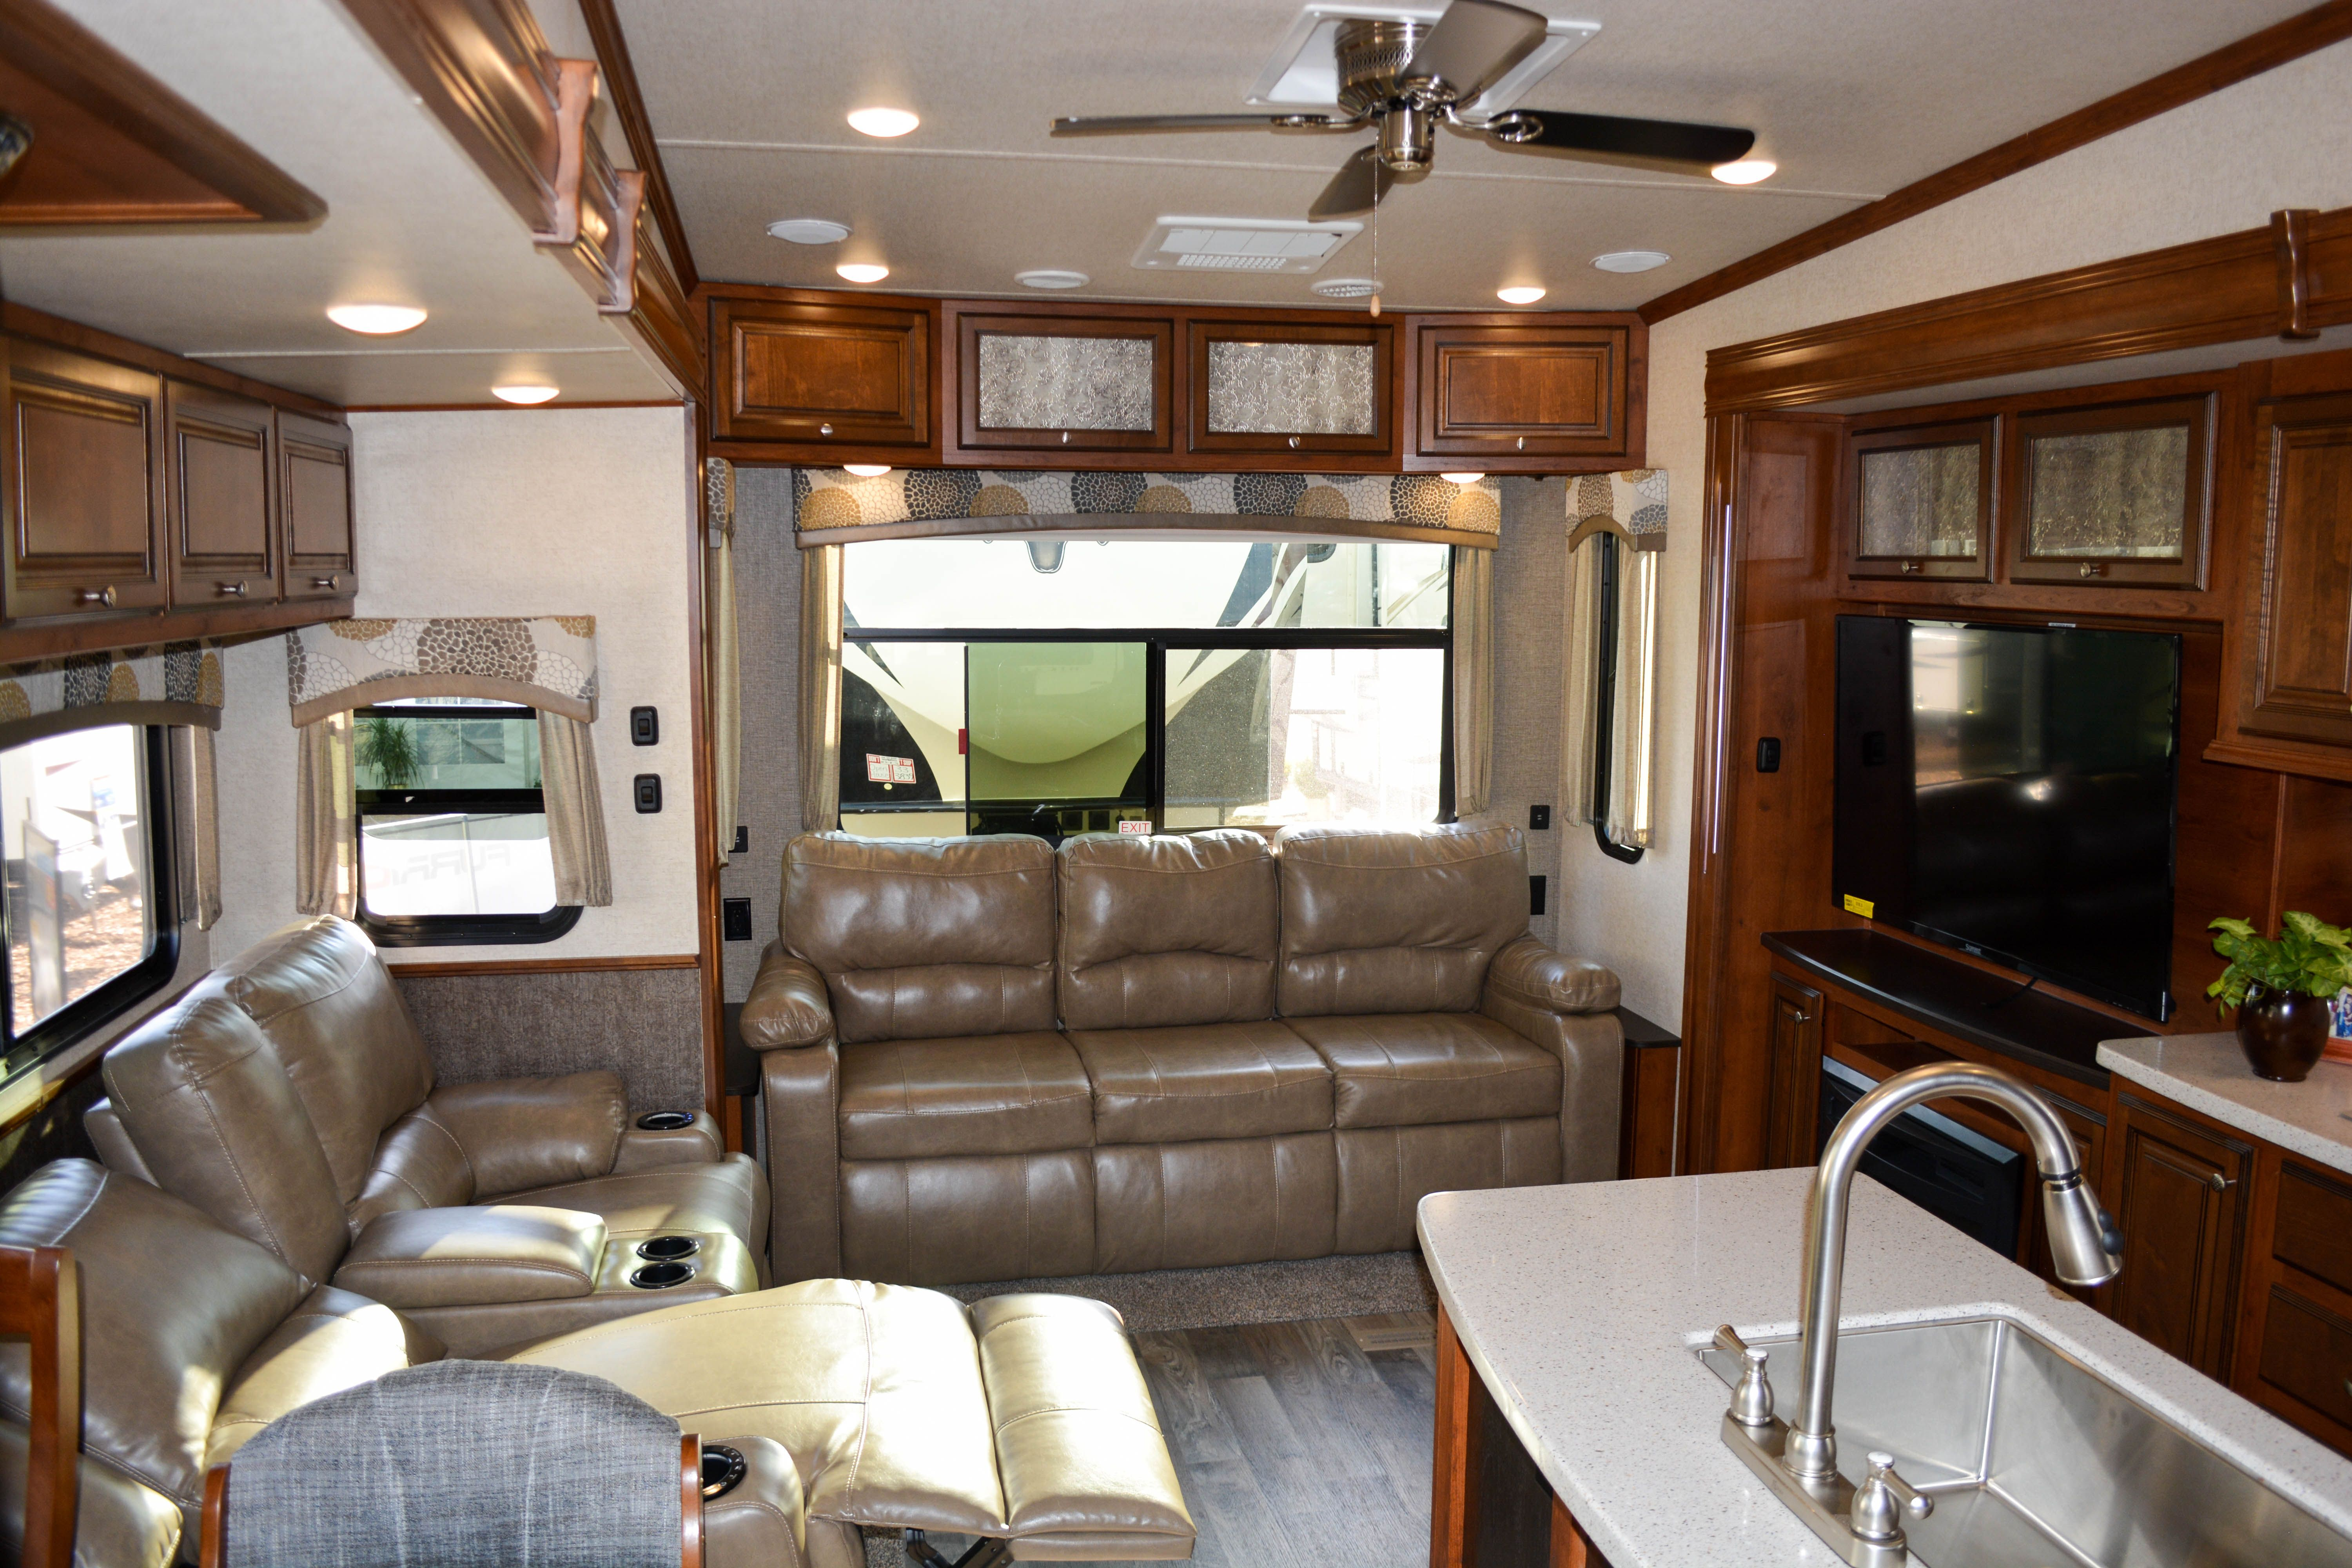 Bhtr 32 Rs Take 3d Tour Luxury Interior Toy Hauler Travel